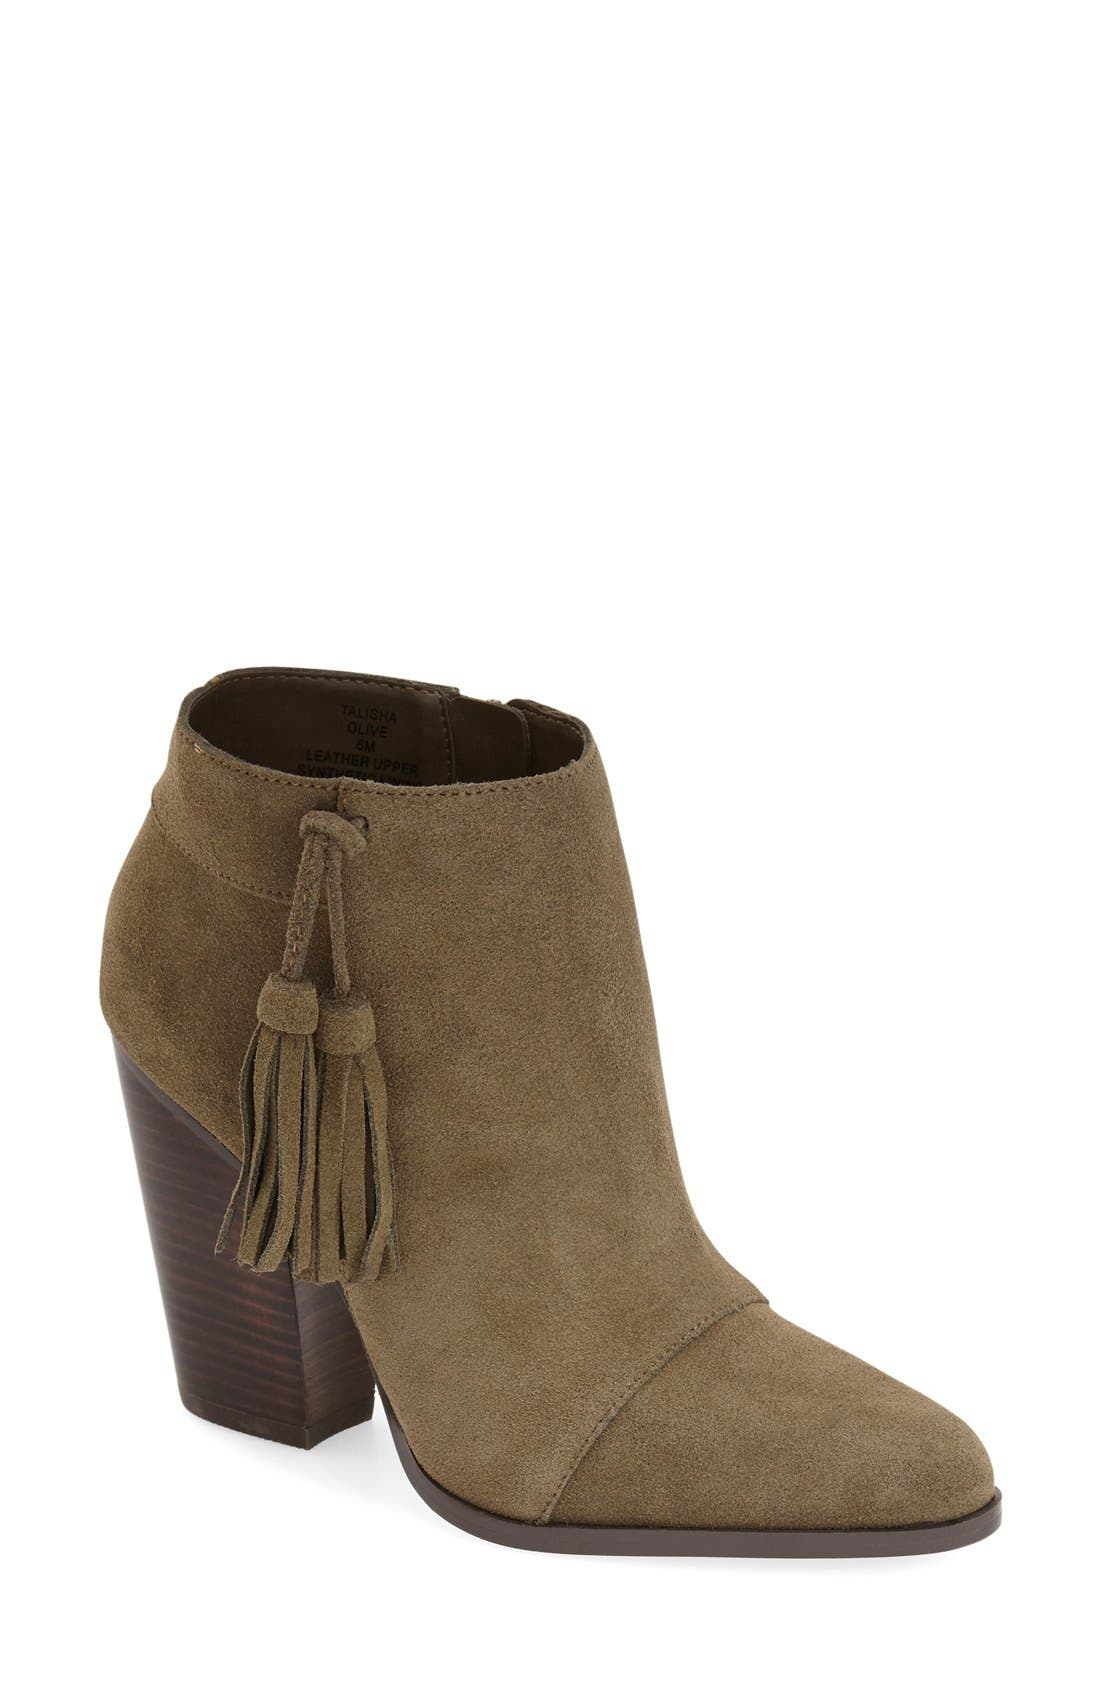 Alternate Image 1 Selected - Sole Society 'Talisha' Tassel Bootie (Women)